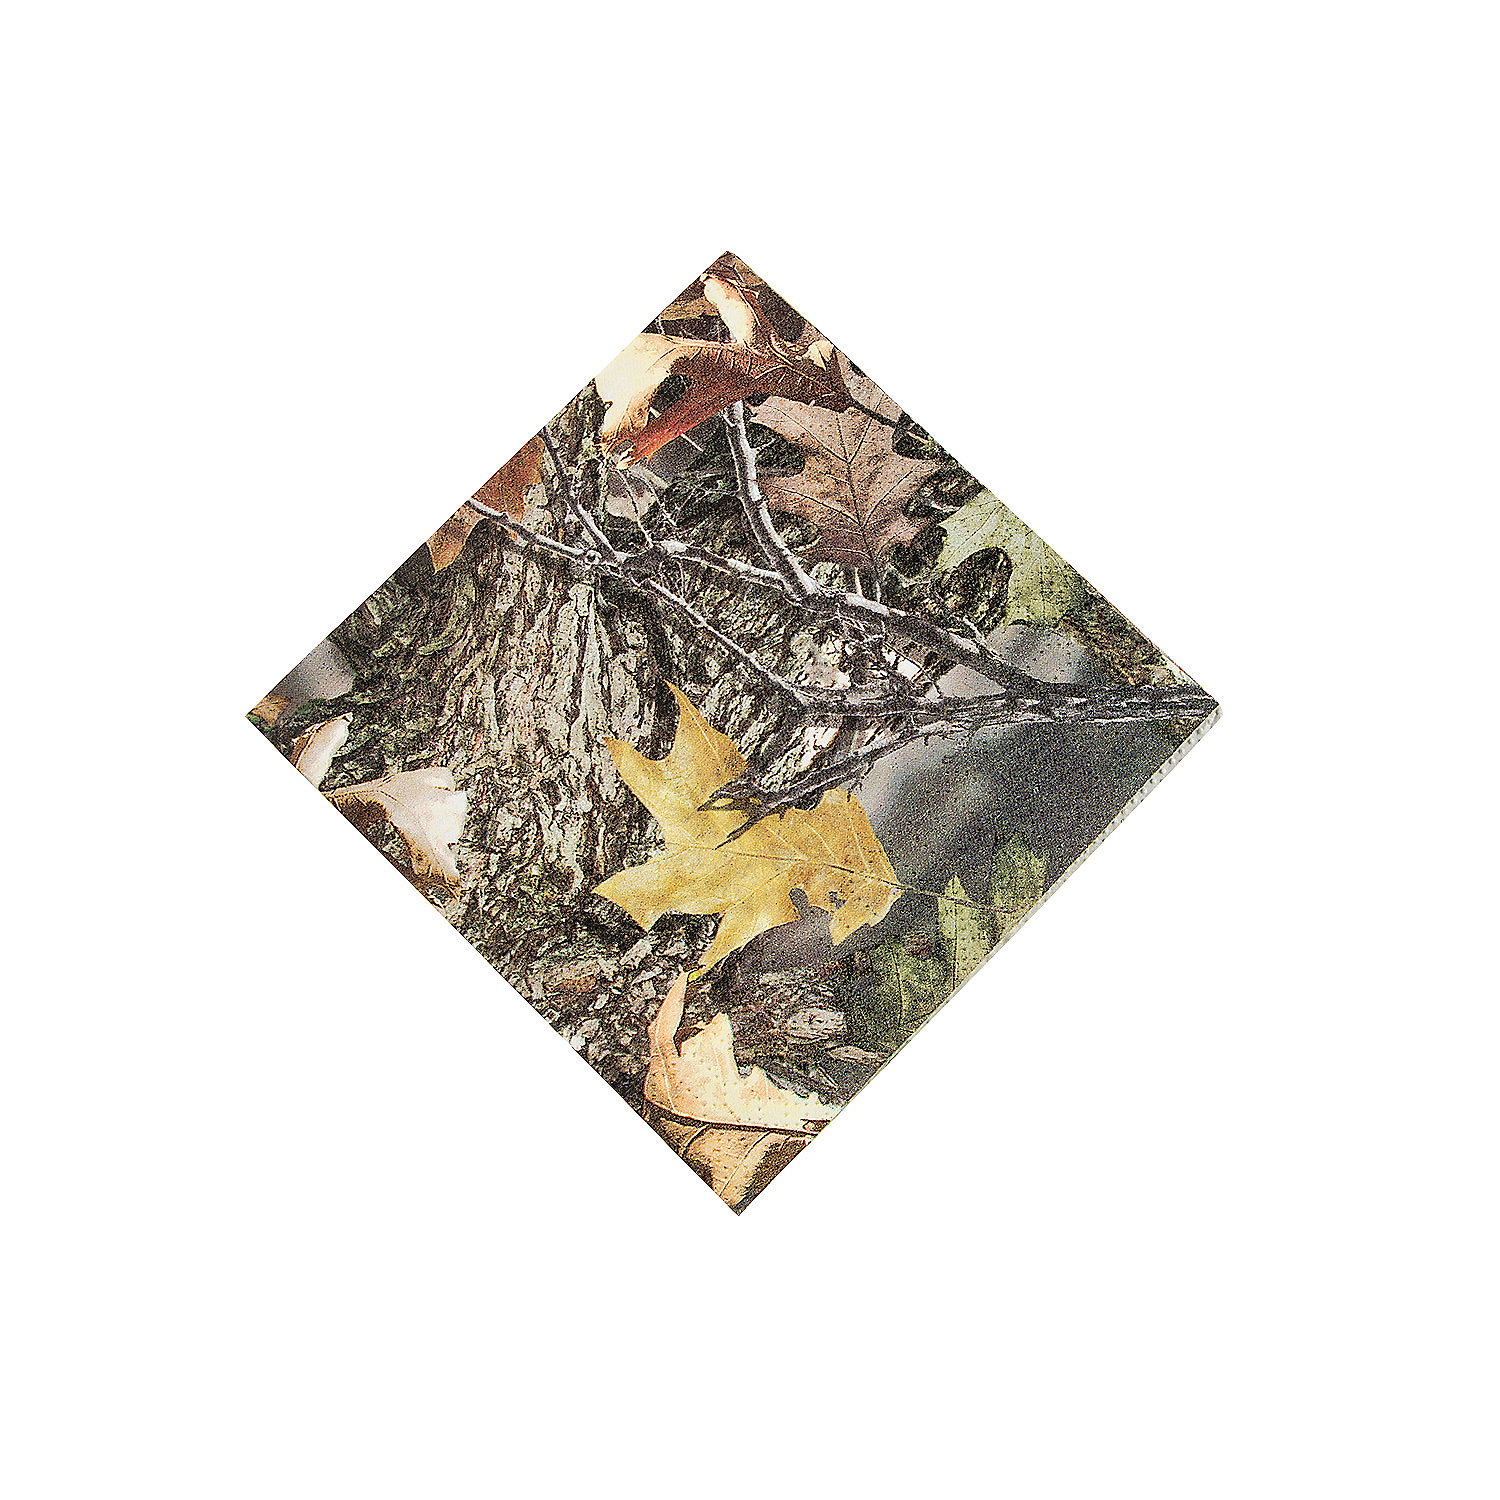 IN-13648297 Camouflage Beverage Napkins 50 Piece(s)